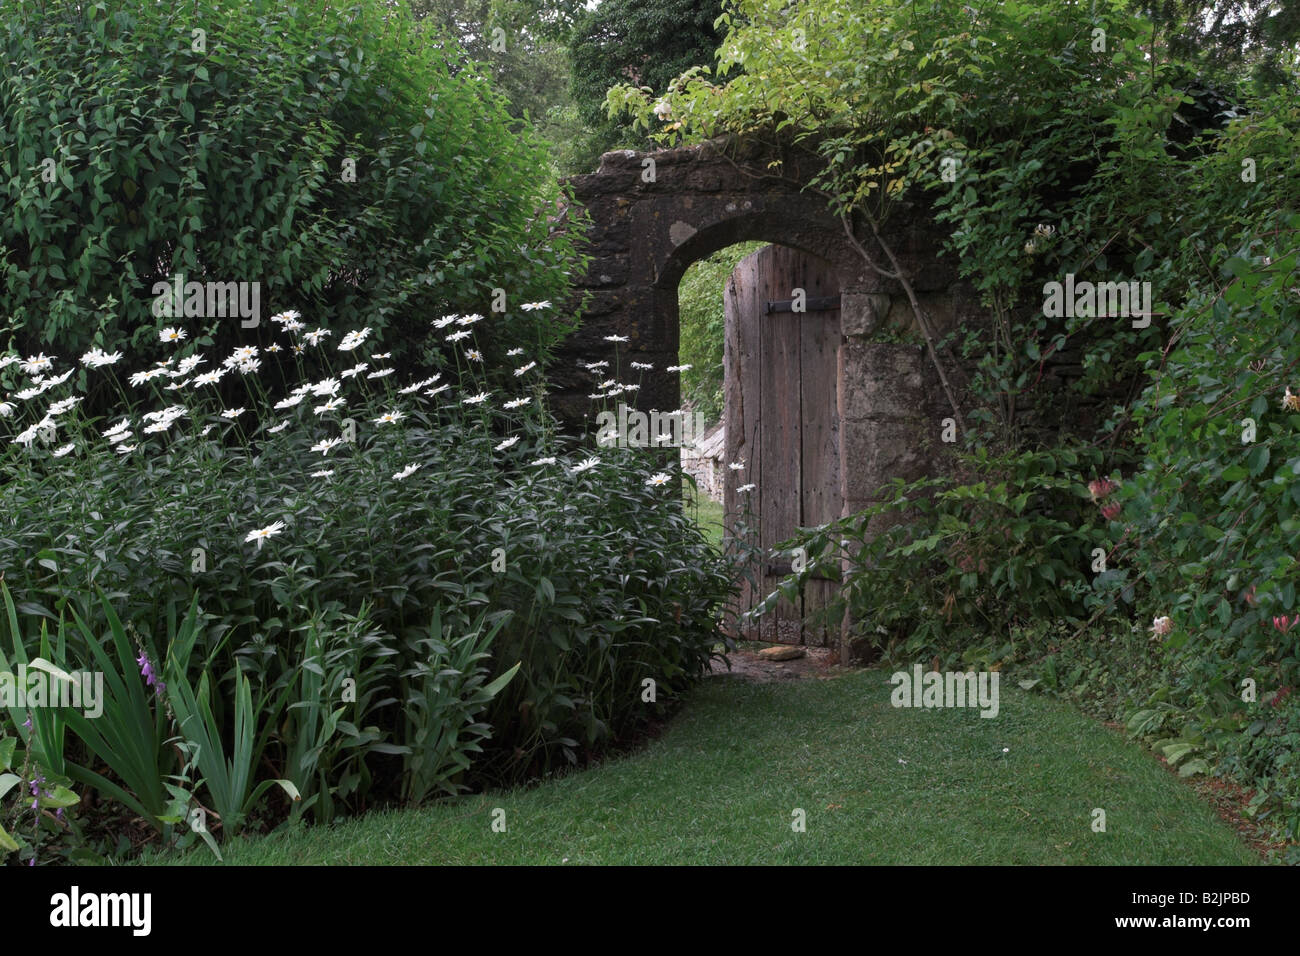 Open gate in country garden, England - Stock Image